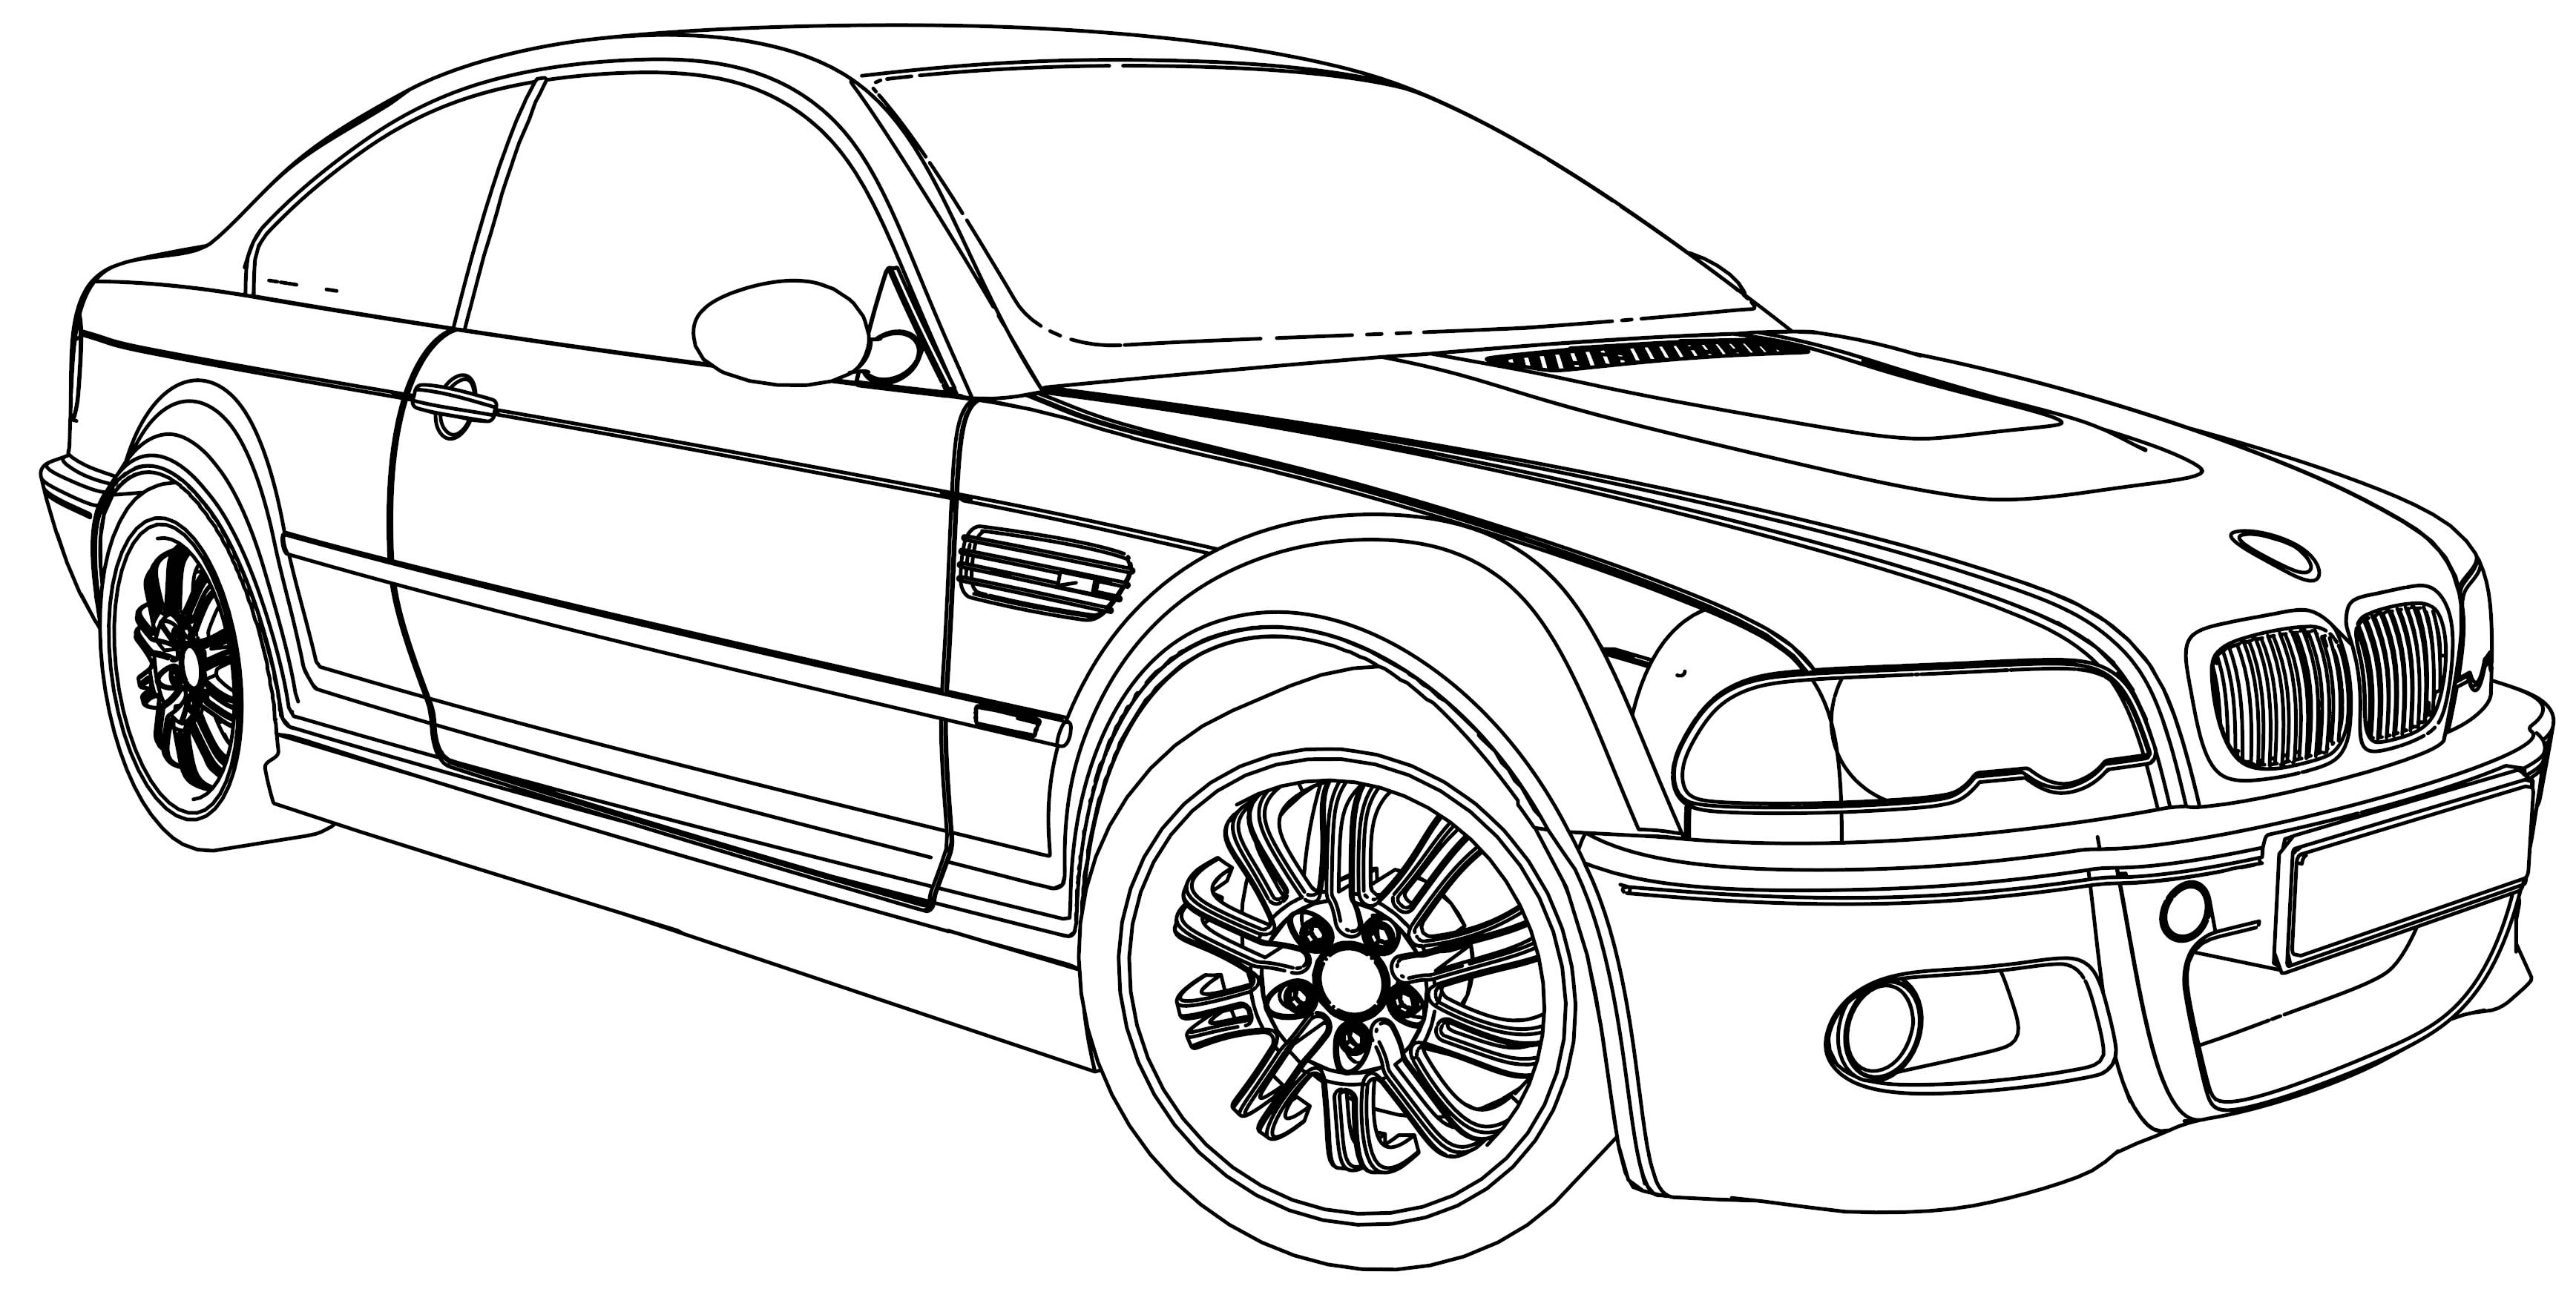 bmw m5 car coloring page wecoloringpagecom With bmw e39 m5